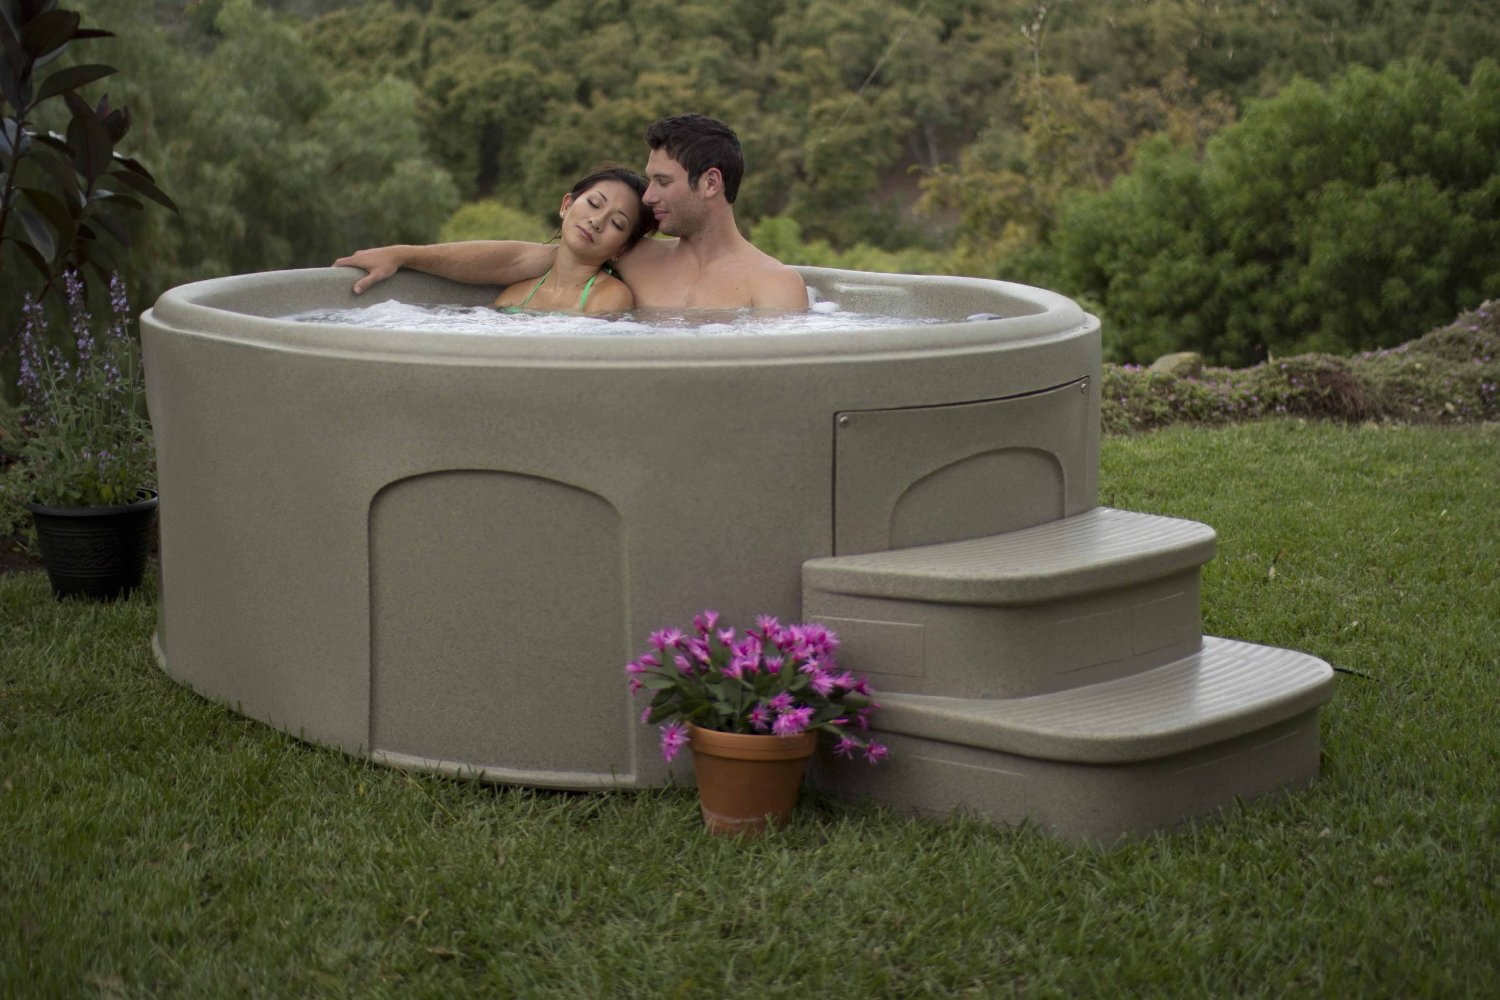 Hot tubs spas hot tub covers spa chemicals spa depot for Home hot tubs